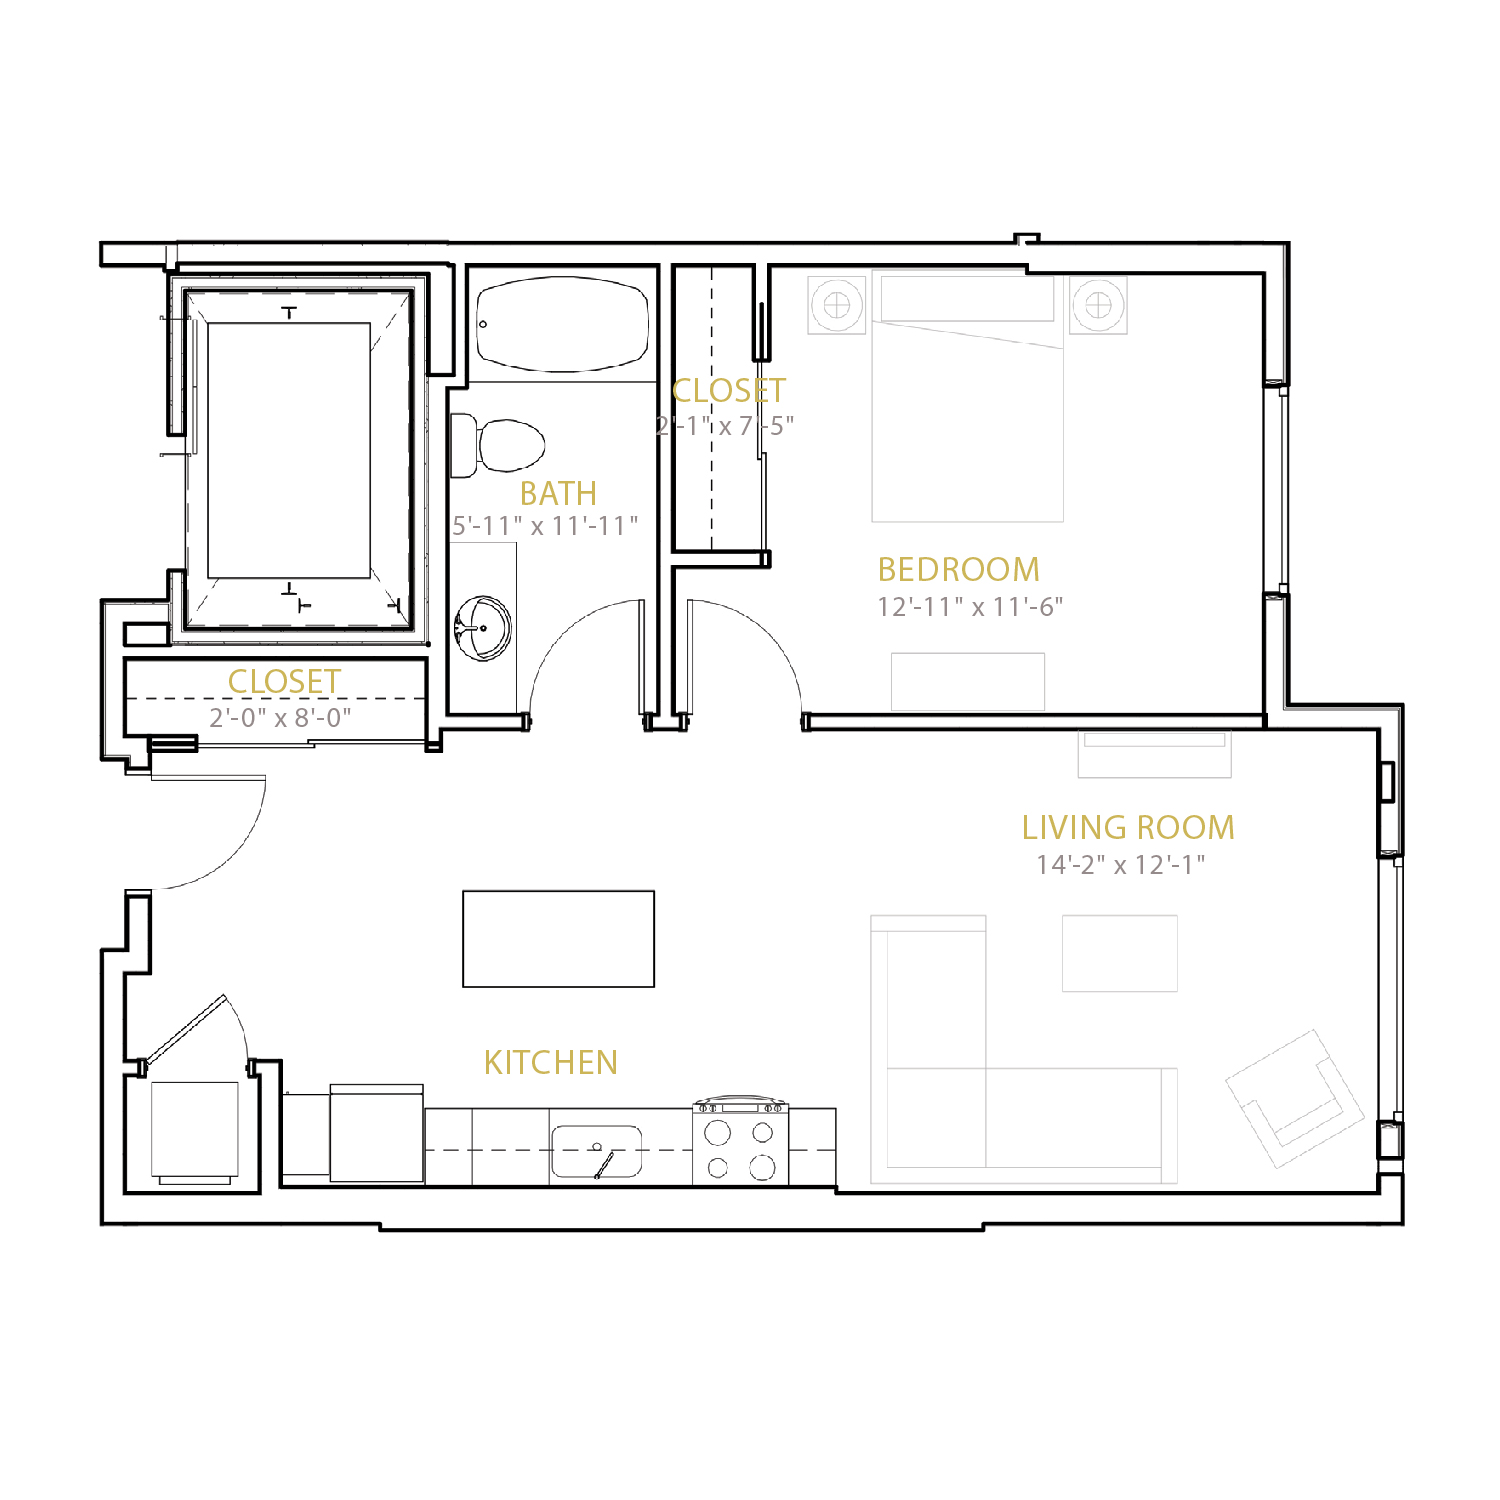 B Six floor plan diagram. One bedroom, one bathroom, and an open kitchen and living area.